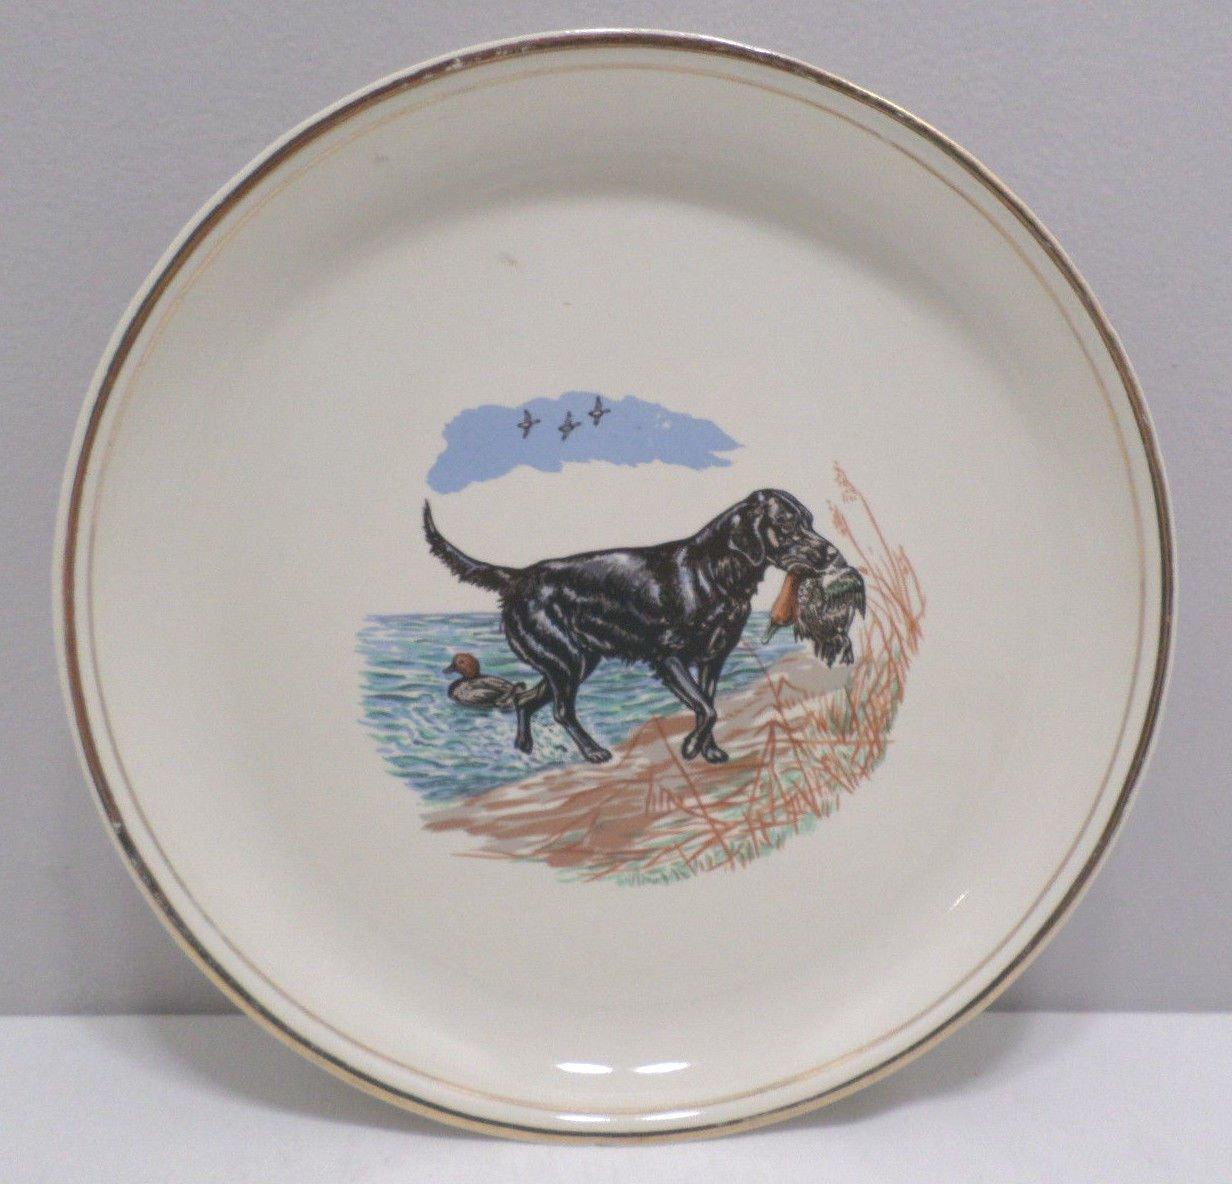 Collectors Plate Black Dog Catching Duck at Lake Ceramic